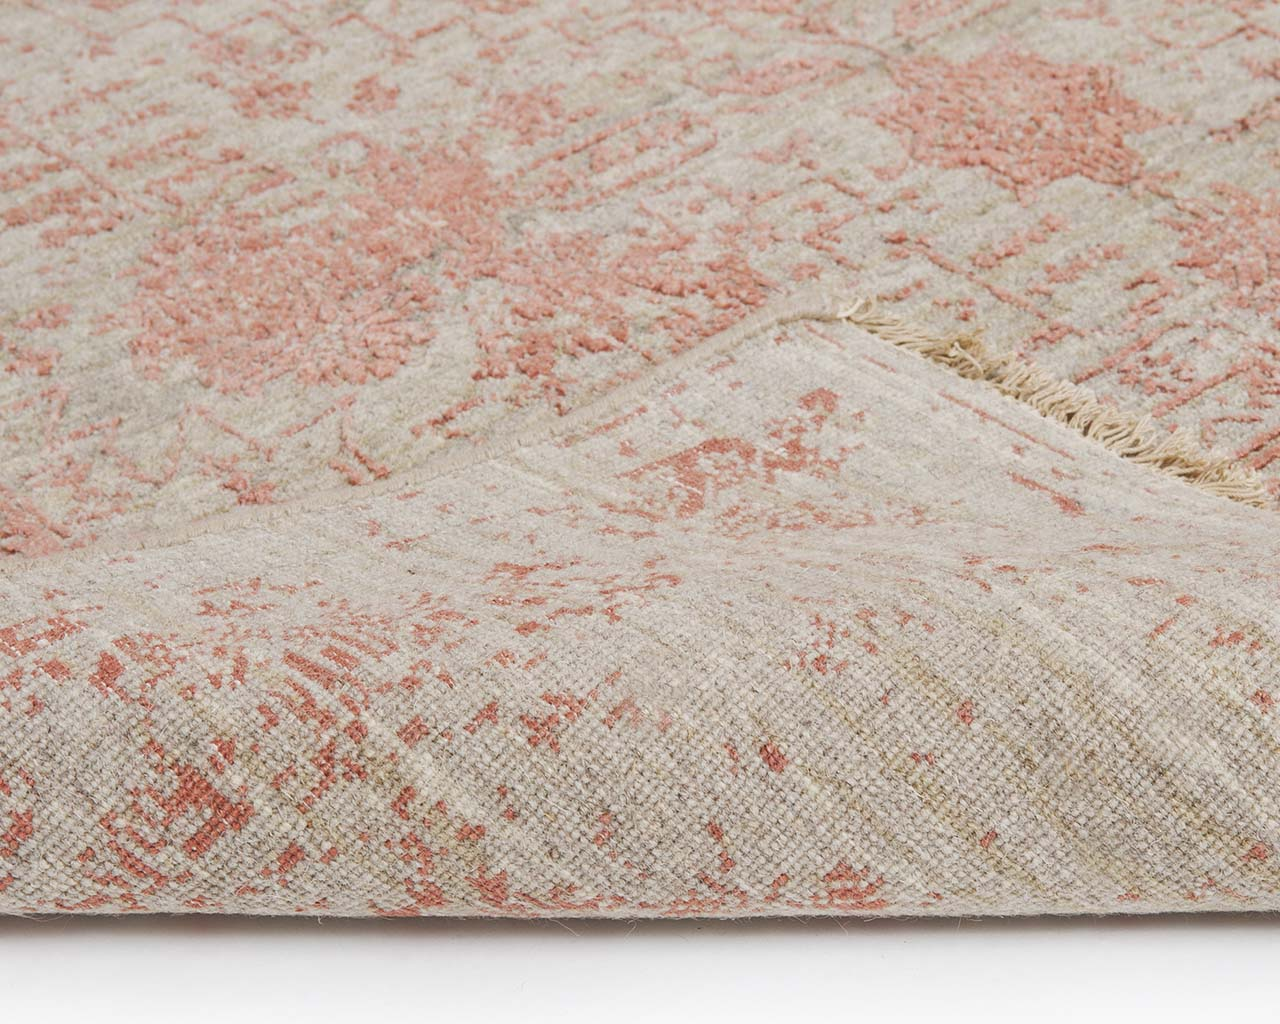 woven light pink luxurious buy area rugs online